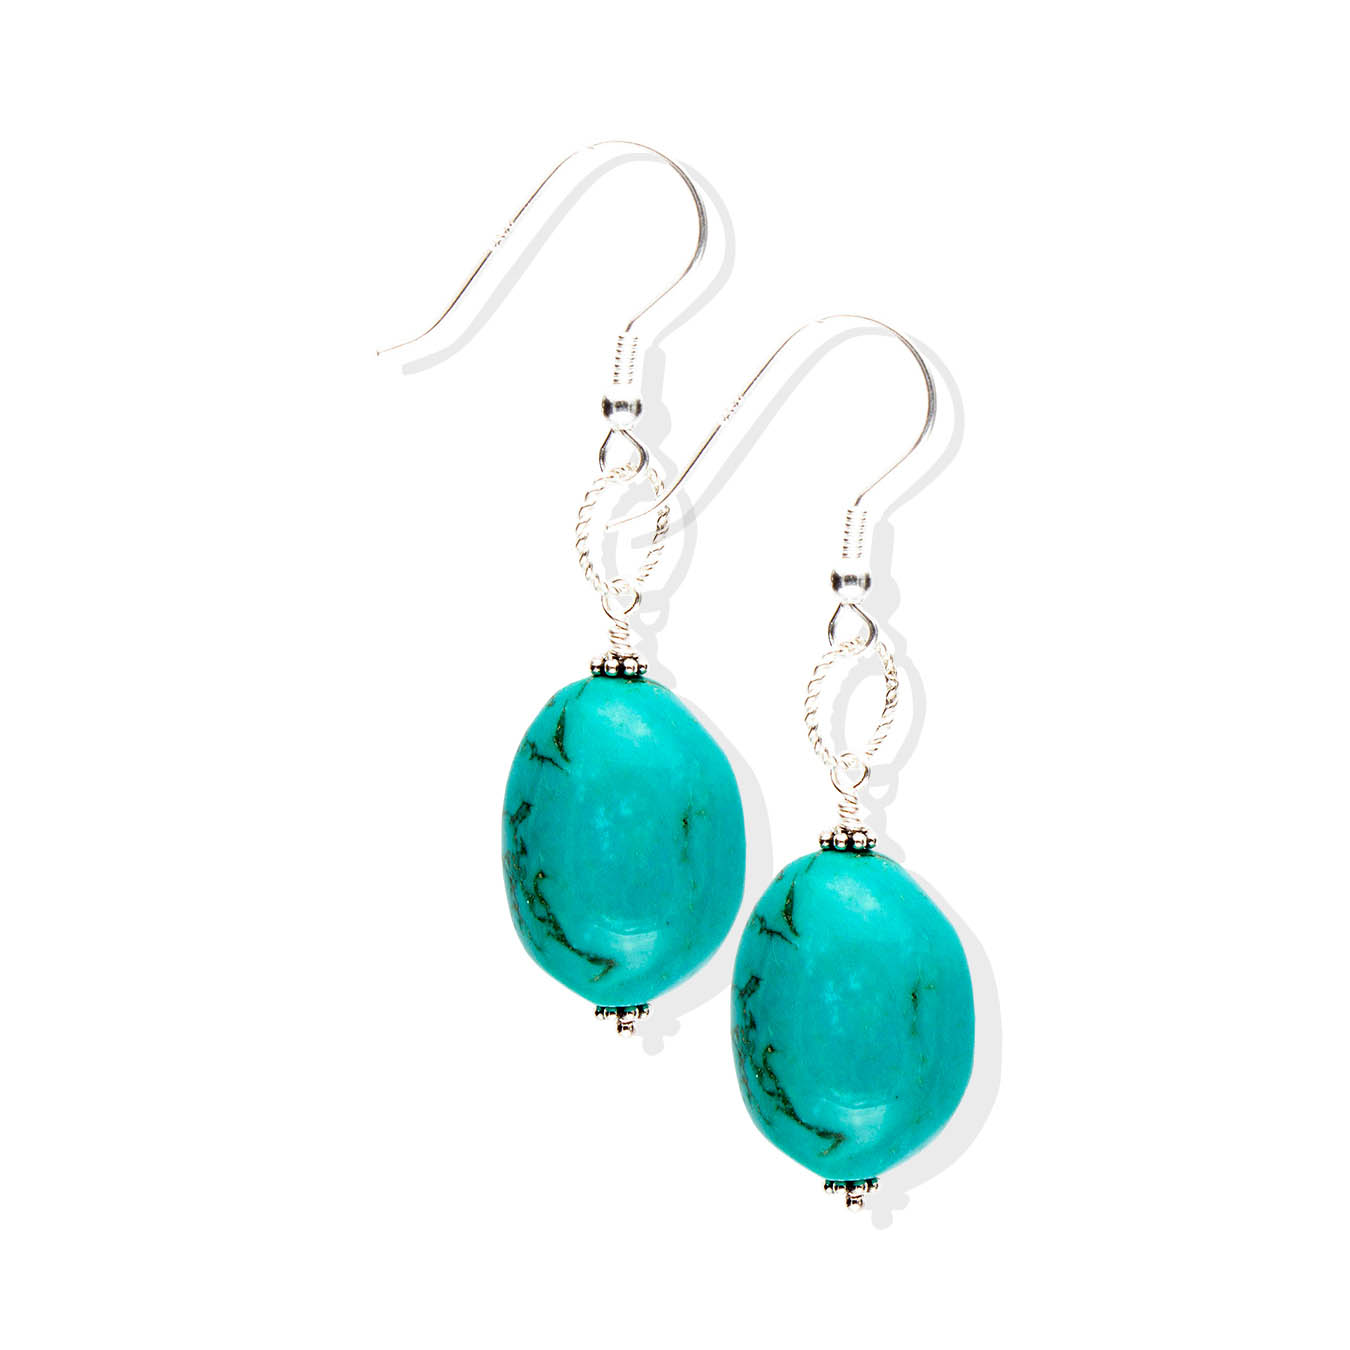 Handcrafted chunky December birthstone bead jewelry made of turquoise